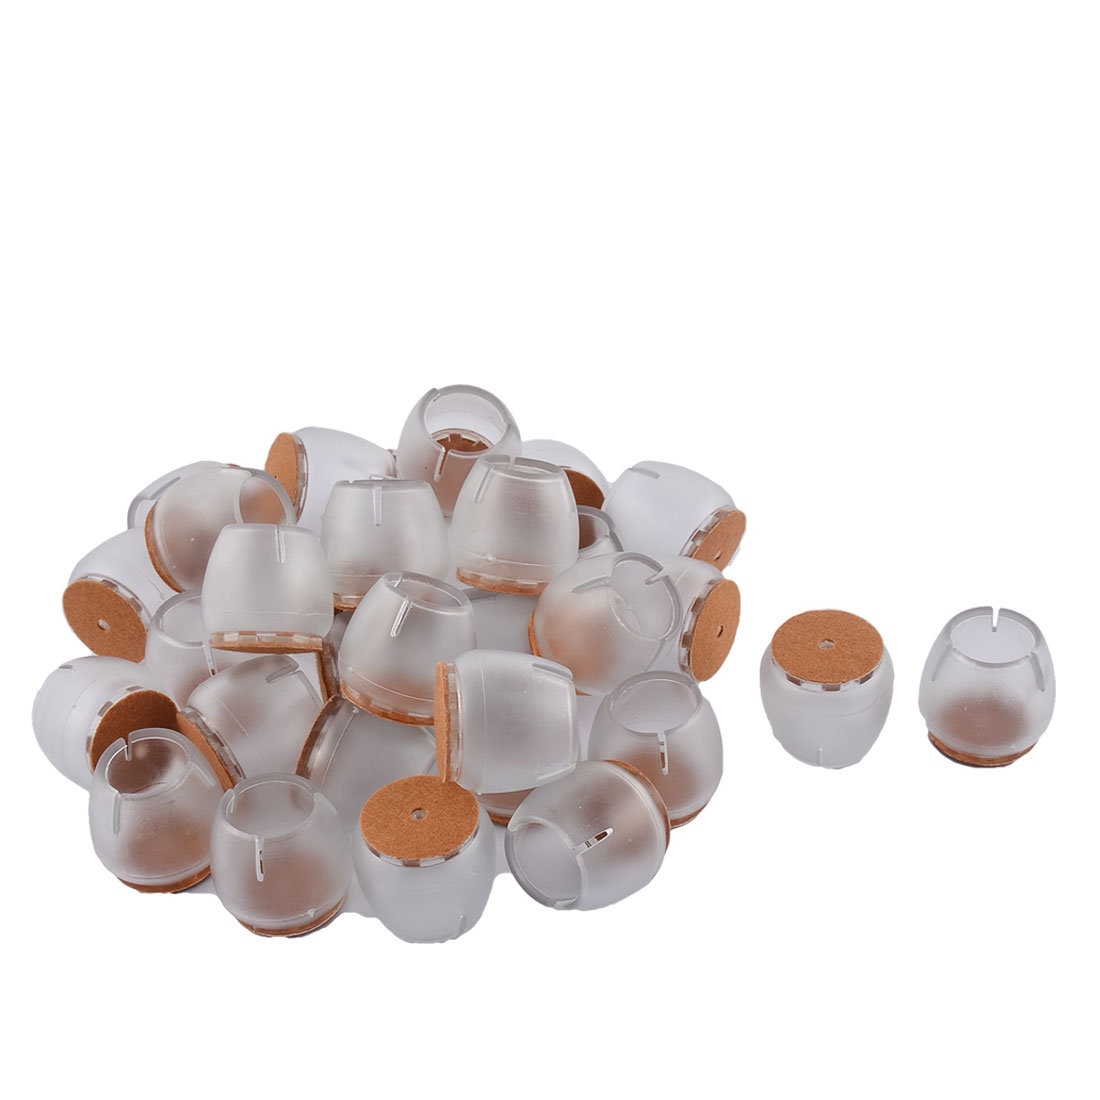 Silicone Round Bottom Furniture Leg Protective Cover Cap Tip Clear 3.3 x 3.1cm 32pcs